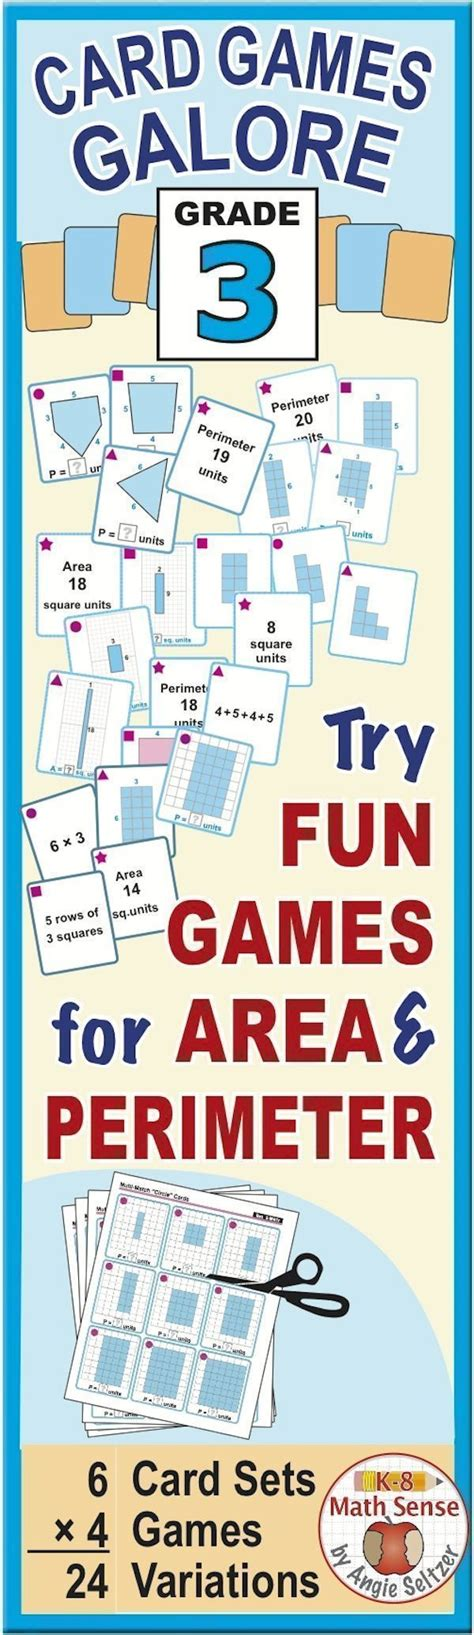 15 Best Images About Area And Perimeter On Pinterest  The Area, Activities And 4th Grade Math